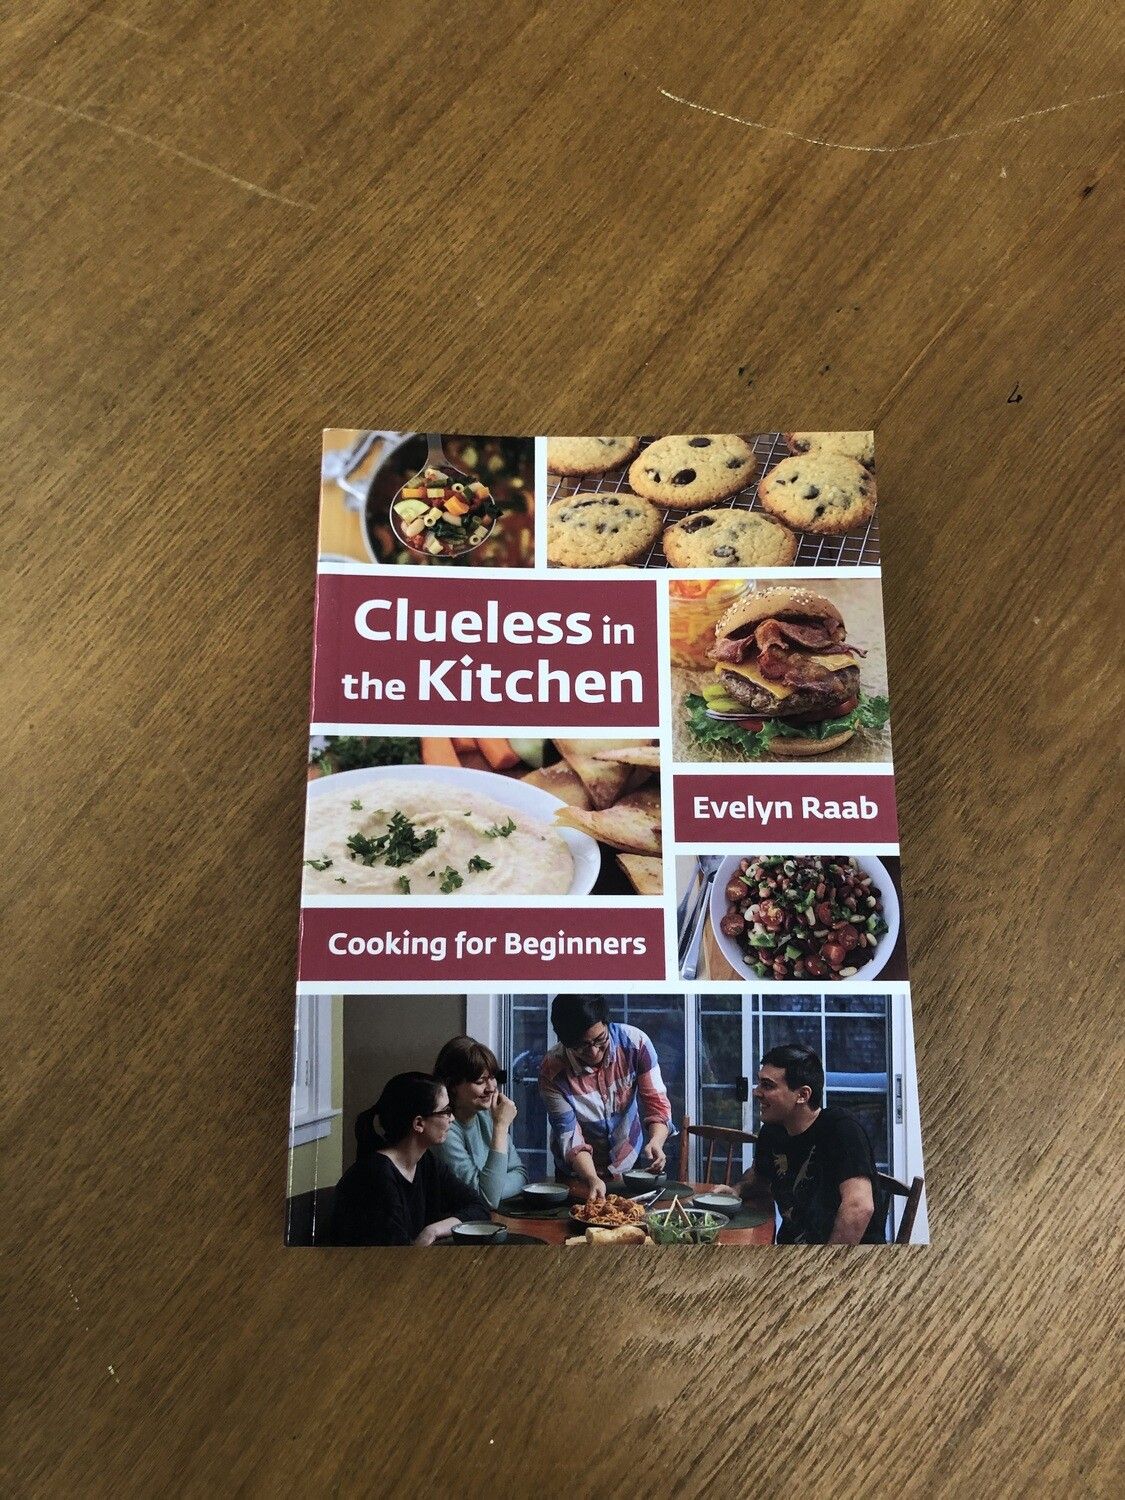 Clueless in the Kitchen